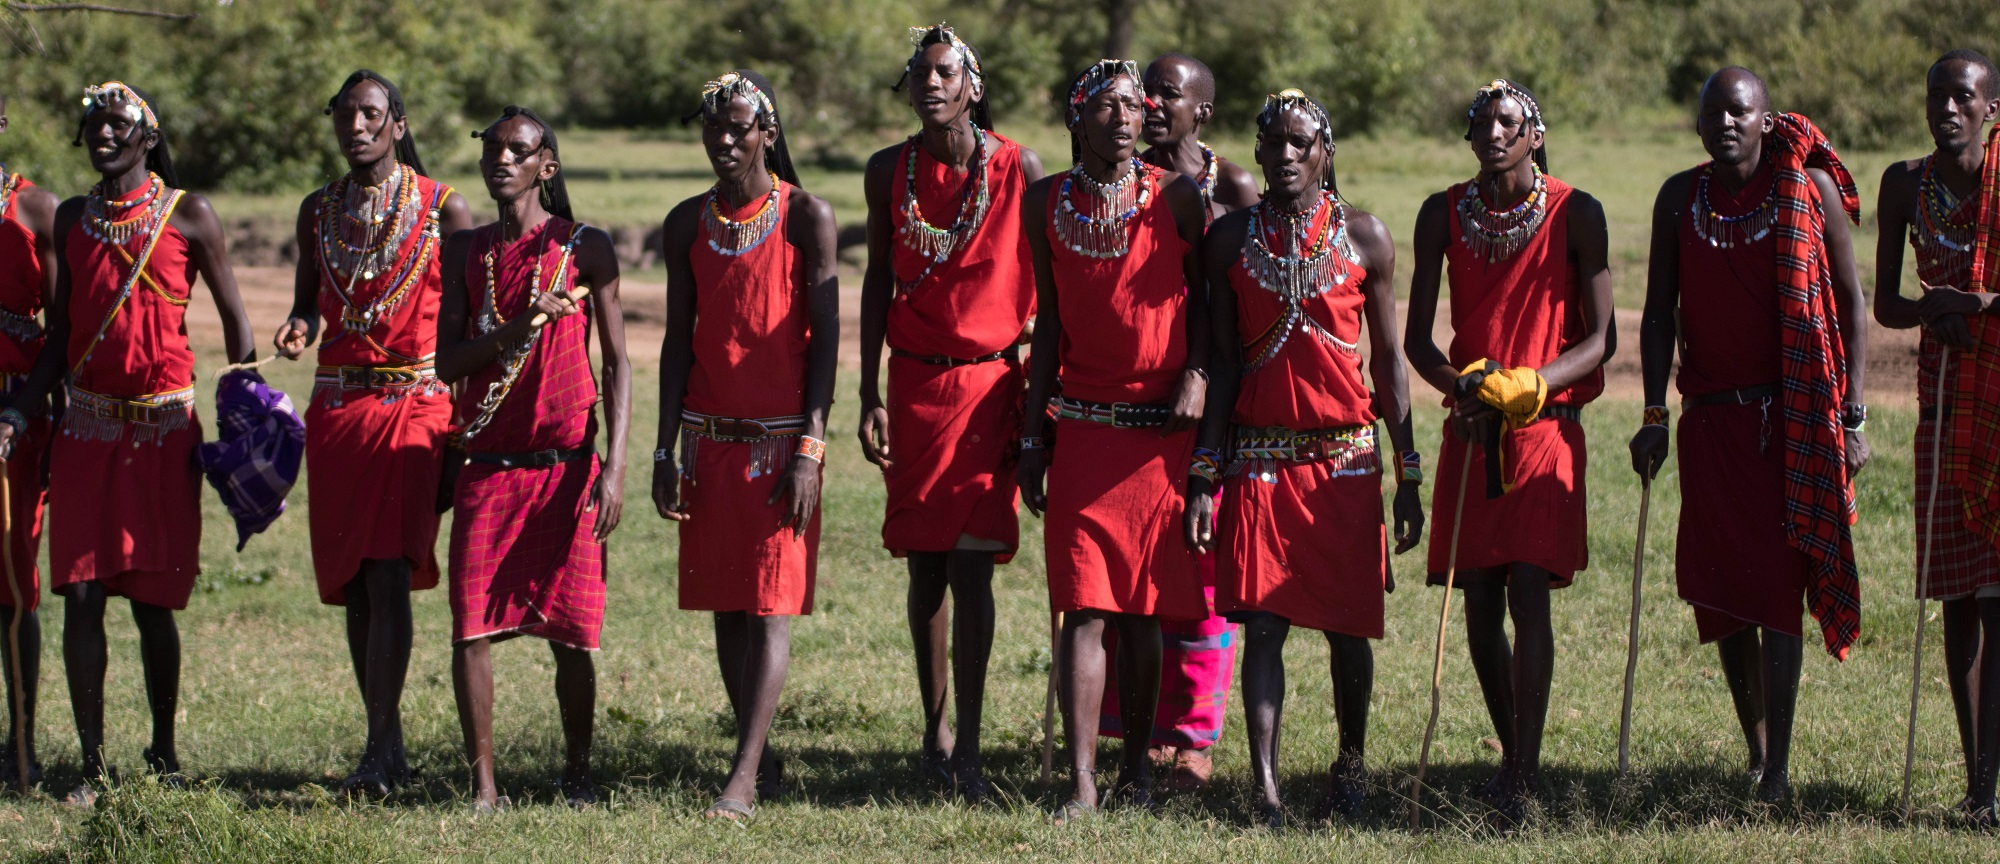 Why is Kenya more famous than most other African countries?